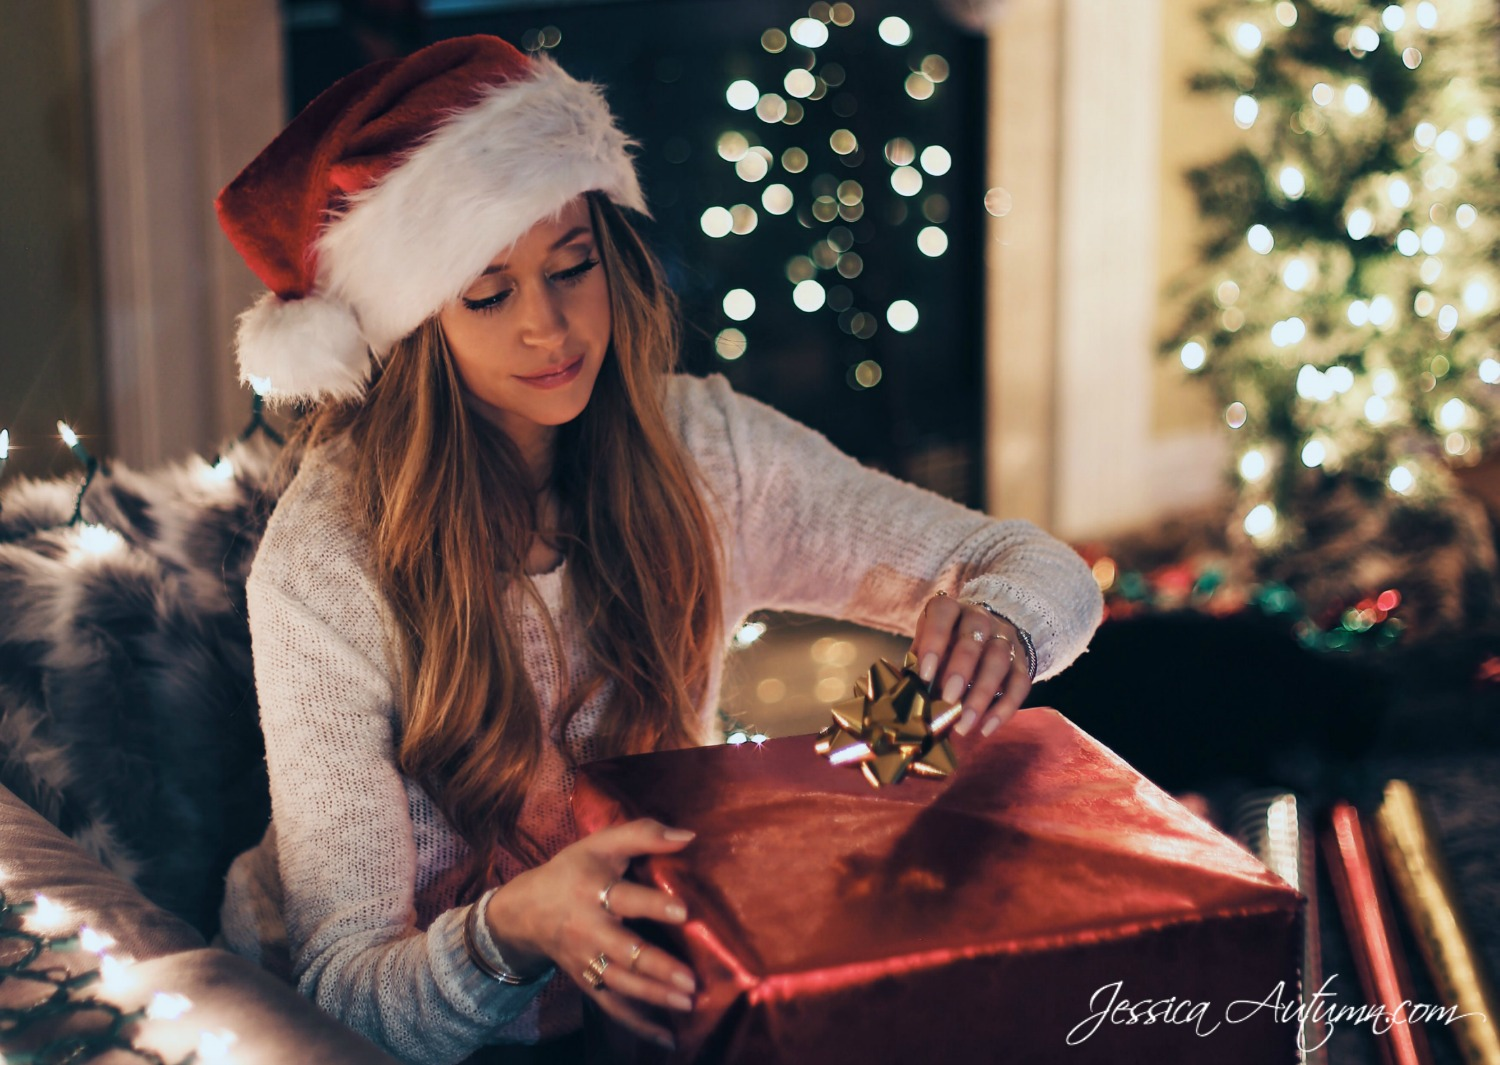 10 Awesome Gifts For Her On Any Budget {$10-$100}. Searching for presents for women can be difficult. Whether you're shopping for your mother, girlfriend or wife, daughter or friend any item on this list is sure to put a smile on her face.